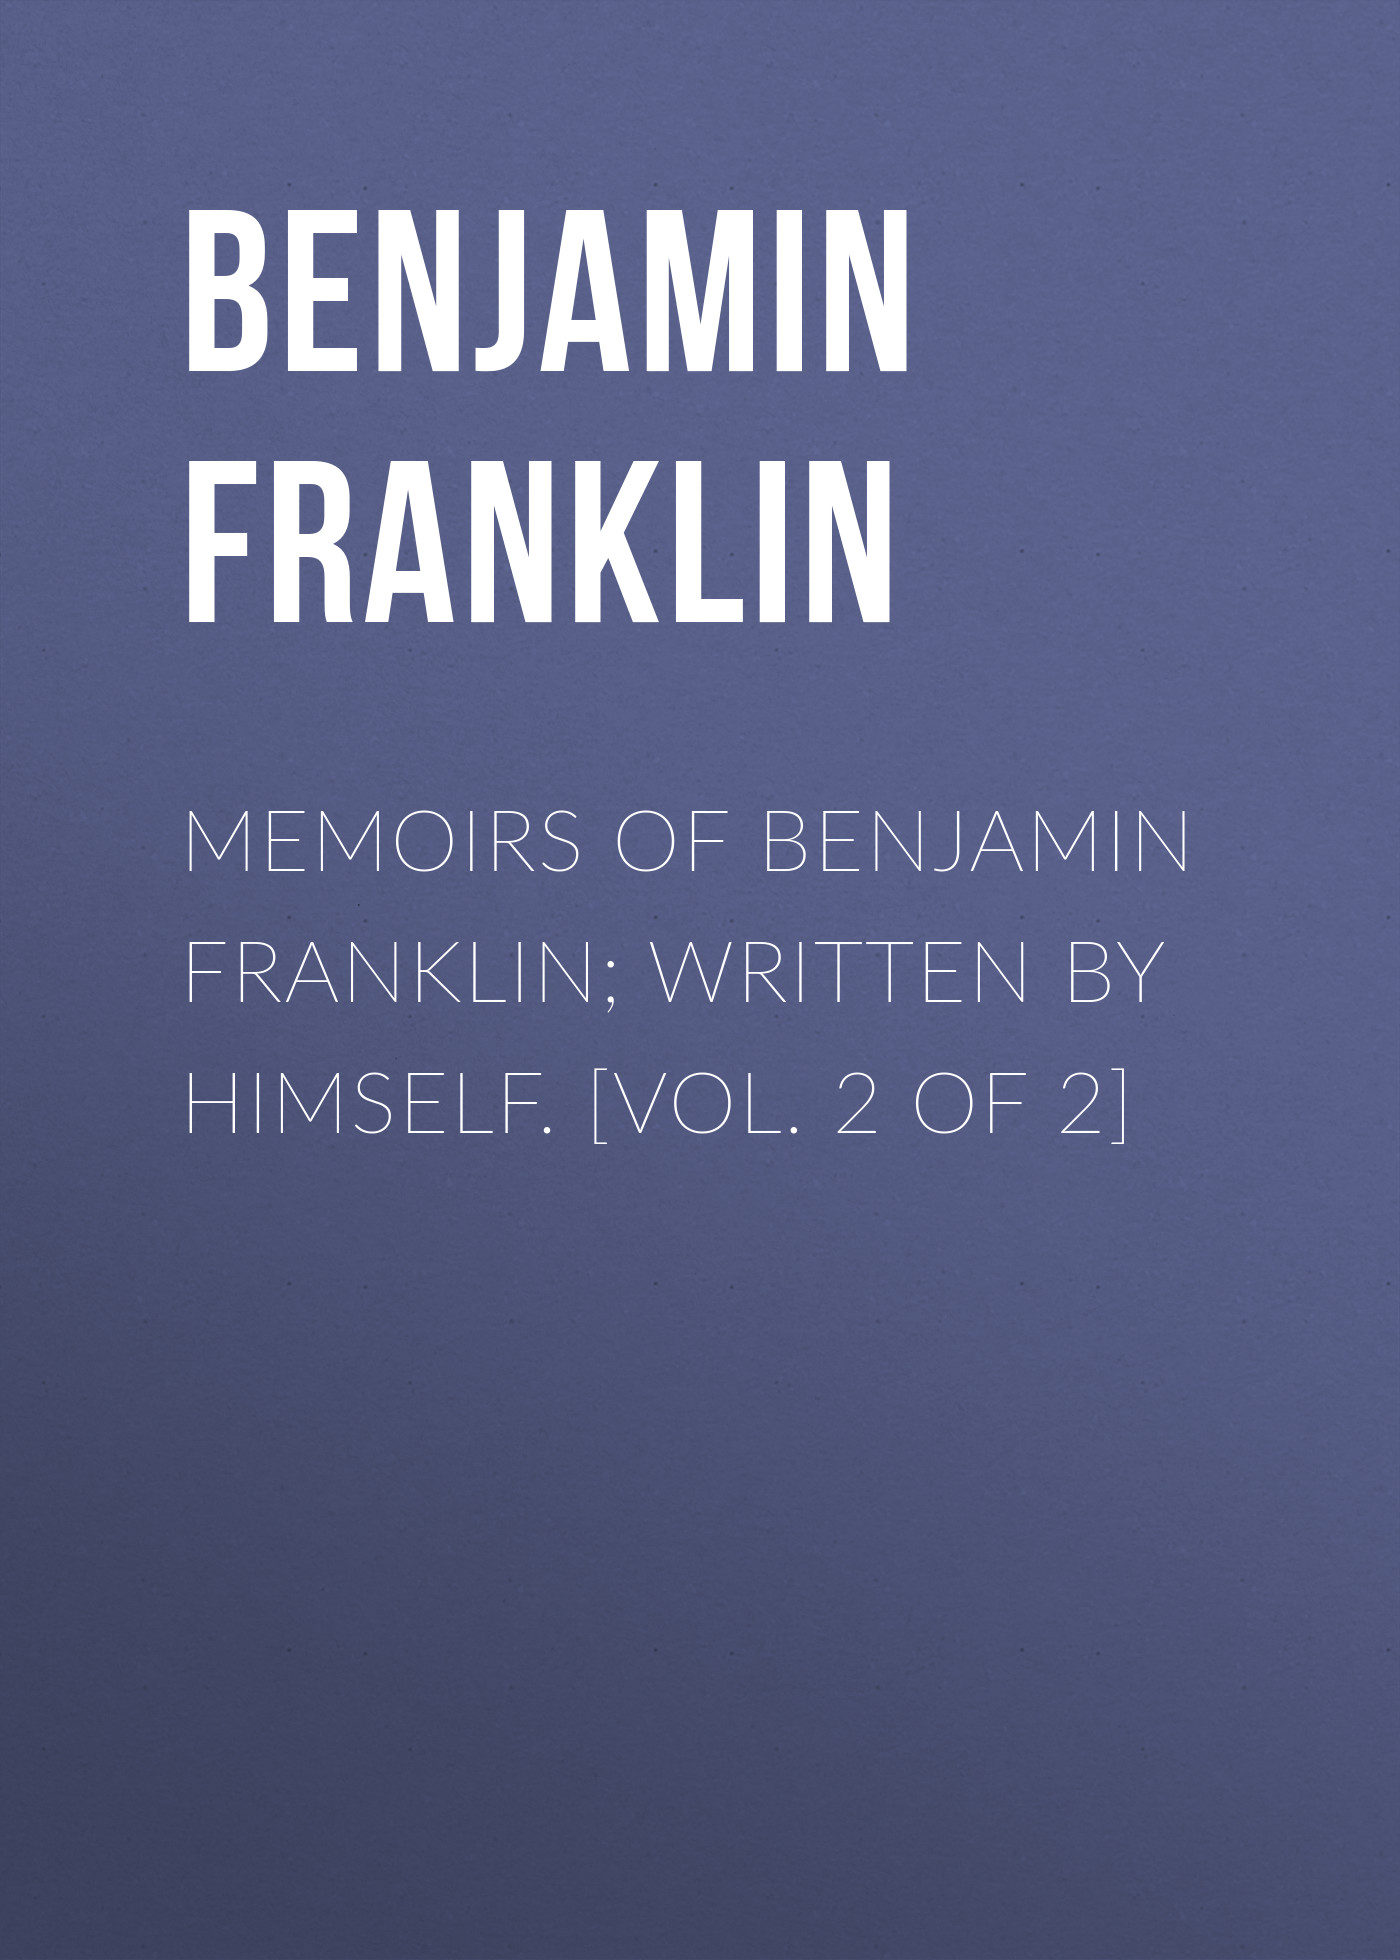 Бенджамин Франклин Memoirs of Benjamin Franklin; Written by Himself. [Vol. 2 of 2] walter scott biographical memoirs vol 2